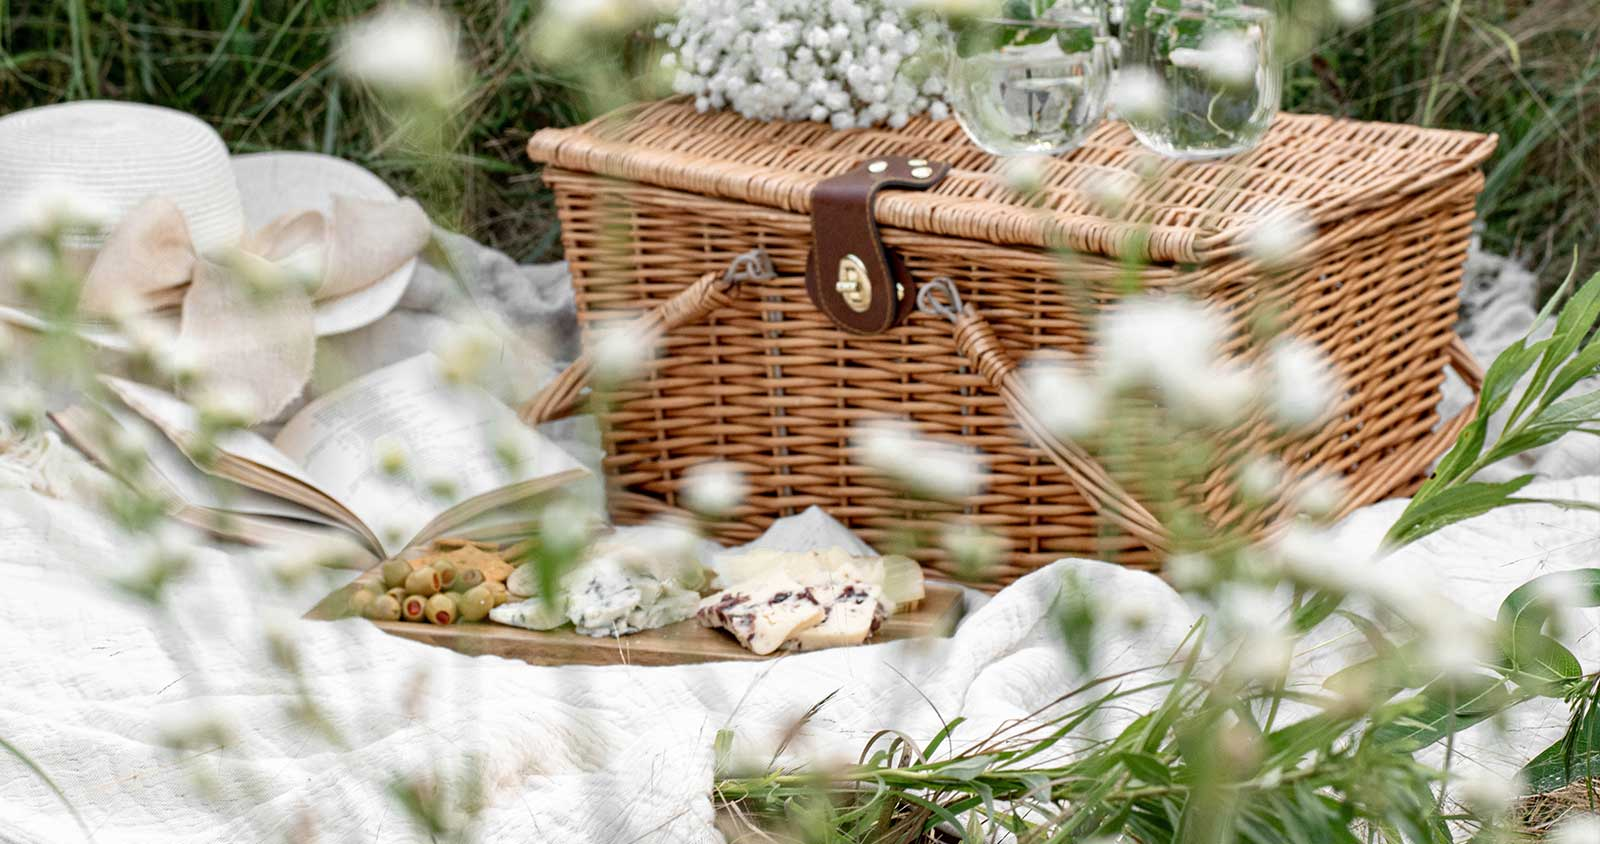 thultula blanket picnic ideas for the summer perfect picnic blankets